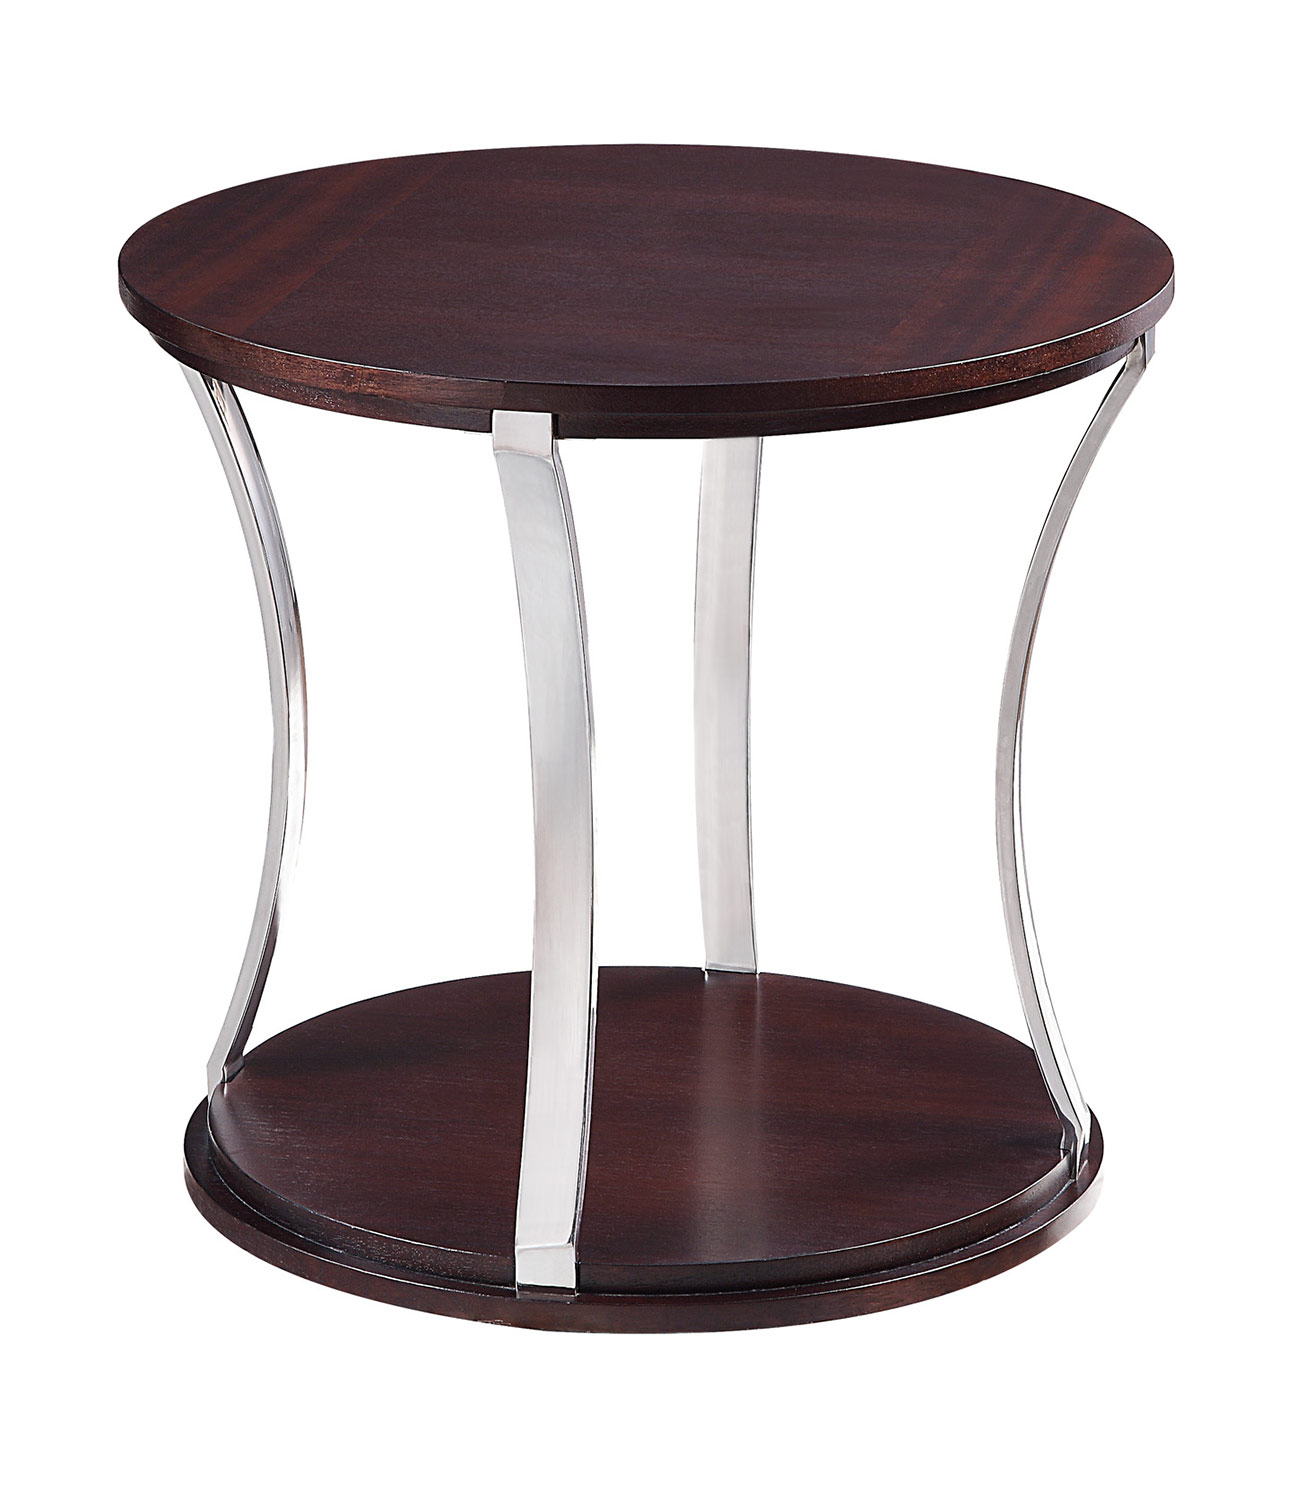 Homelegance Bevan Round End Table - Dark Cherry